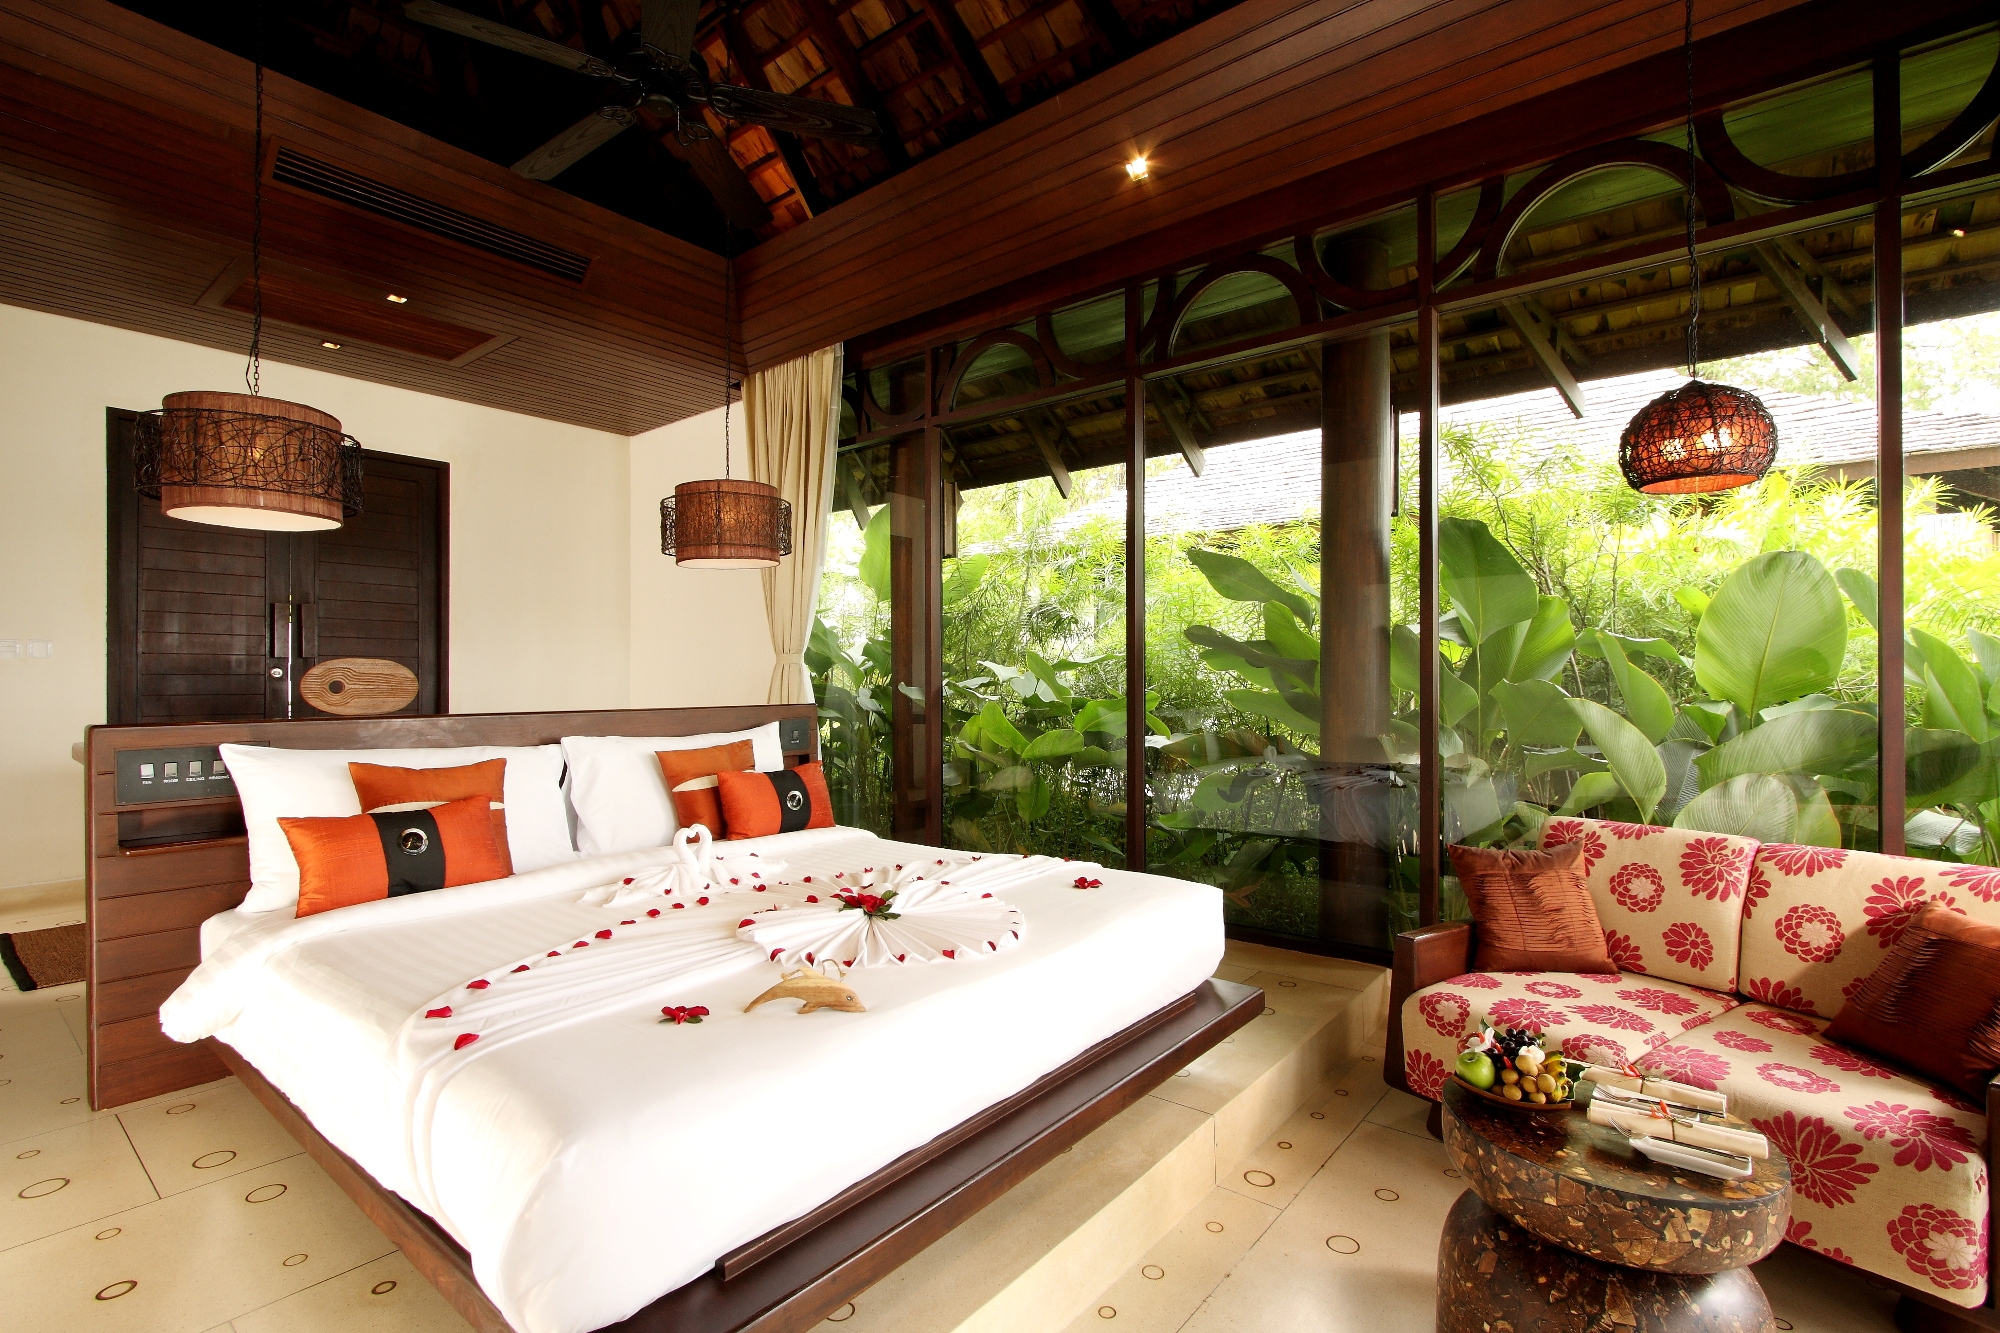 003_Deluxe_Villa-Bedroom_The_Vijitt_Resort_Phuket